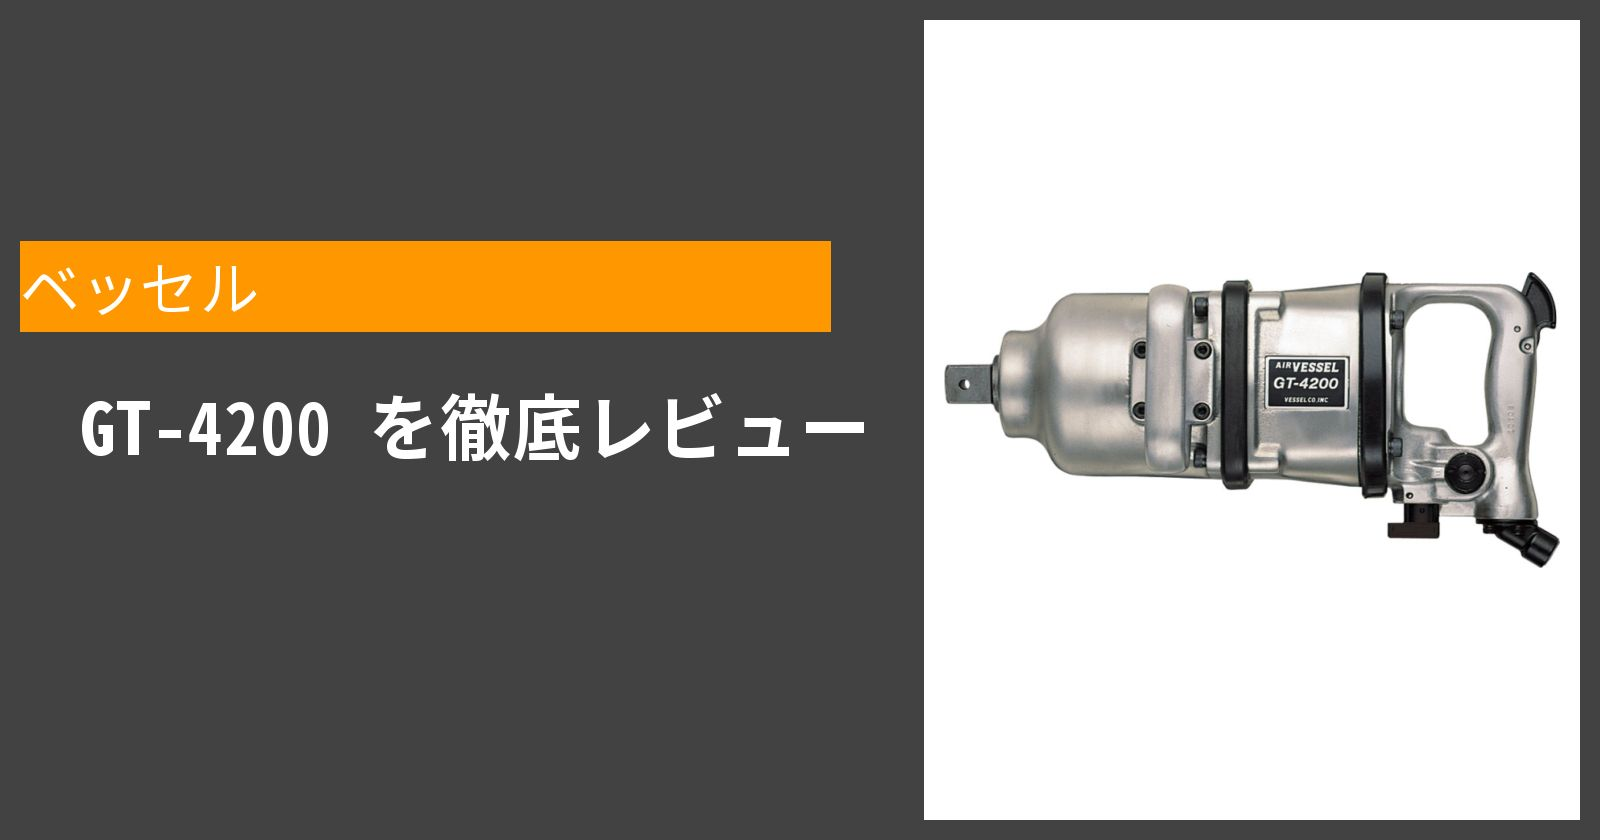 GT-4200を徹底評価